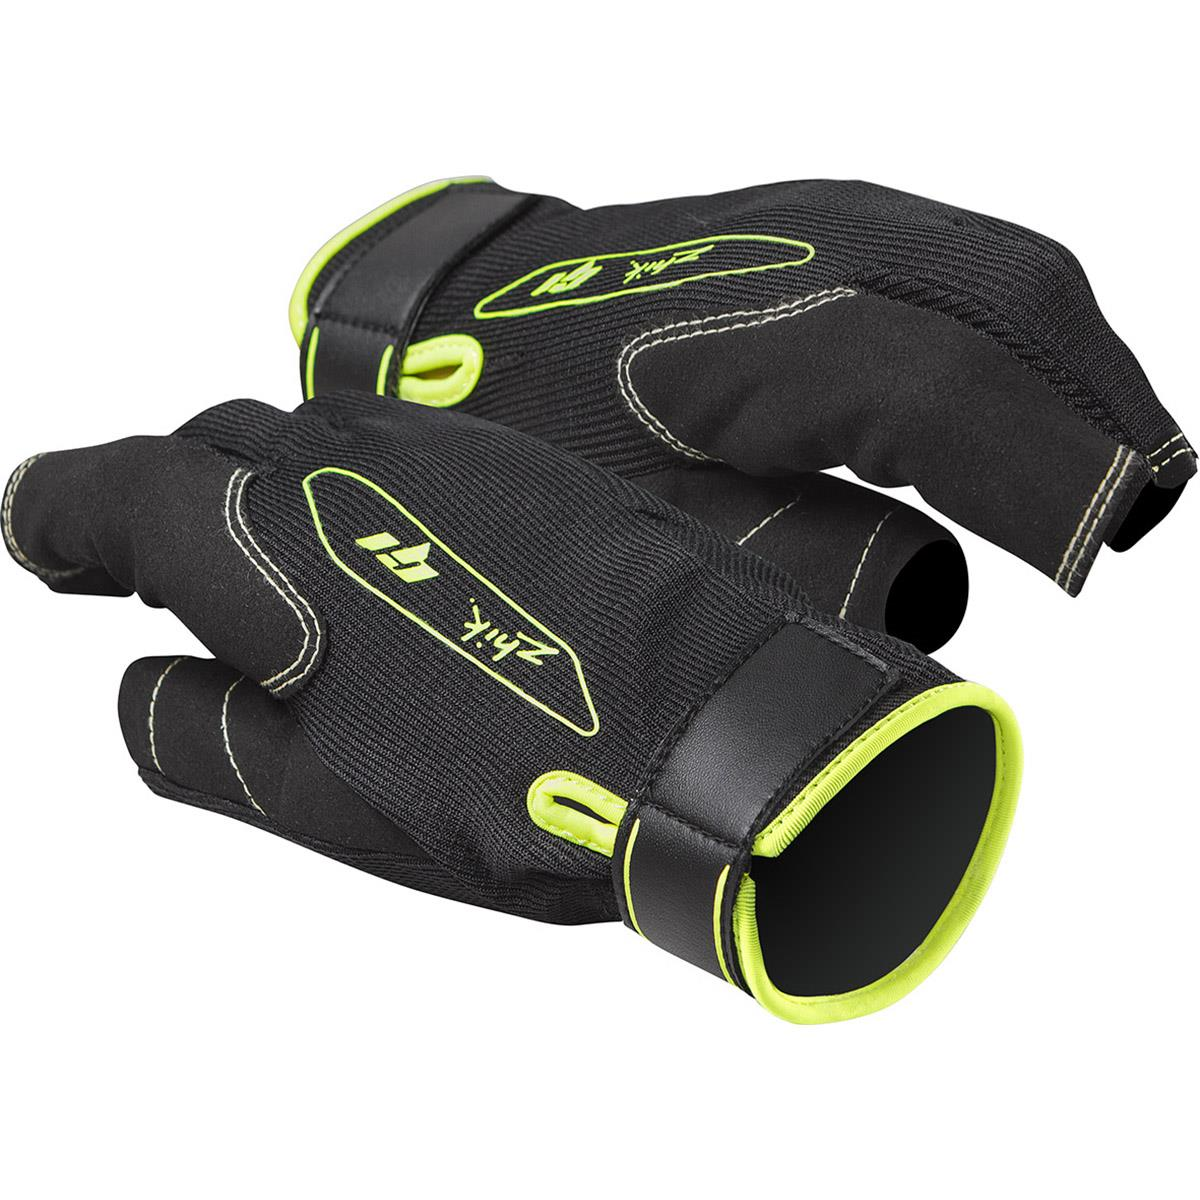 Zhik Short Finger G1 Sailing Gloves